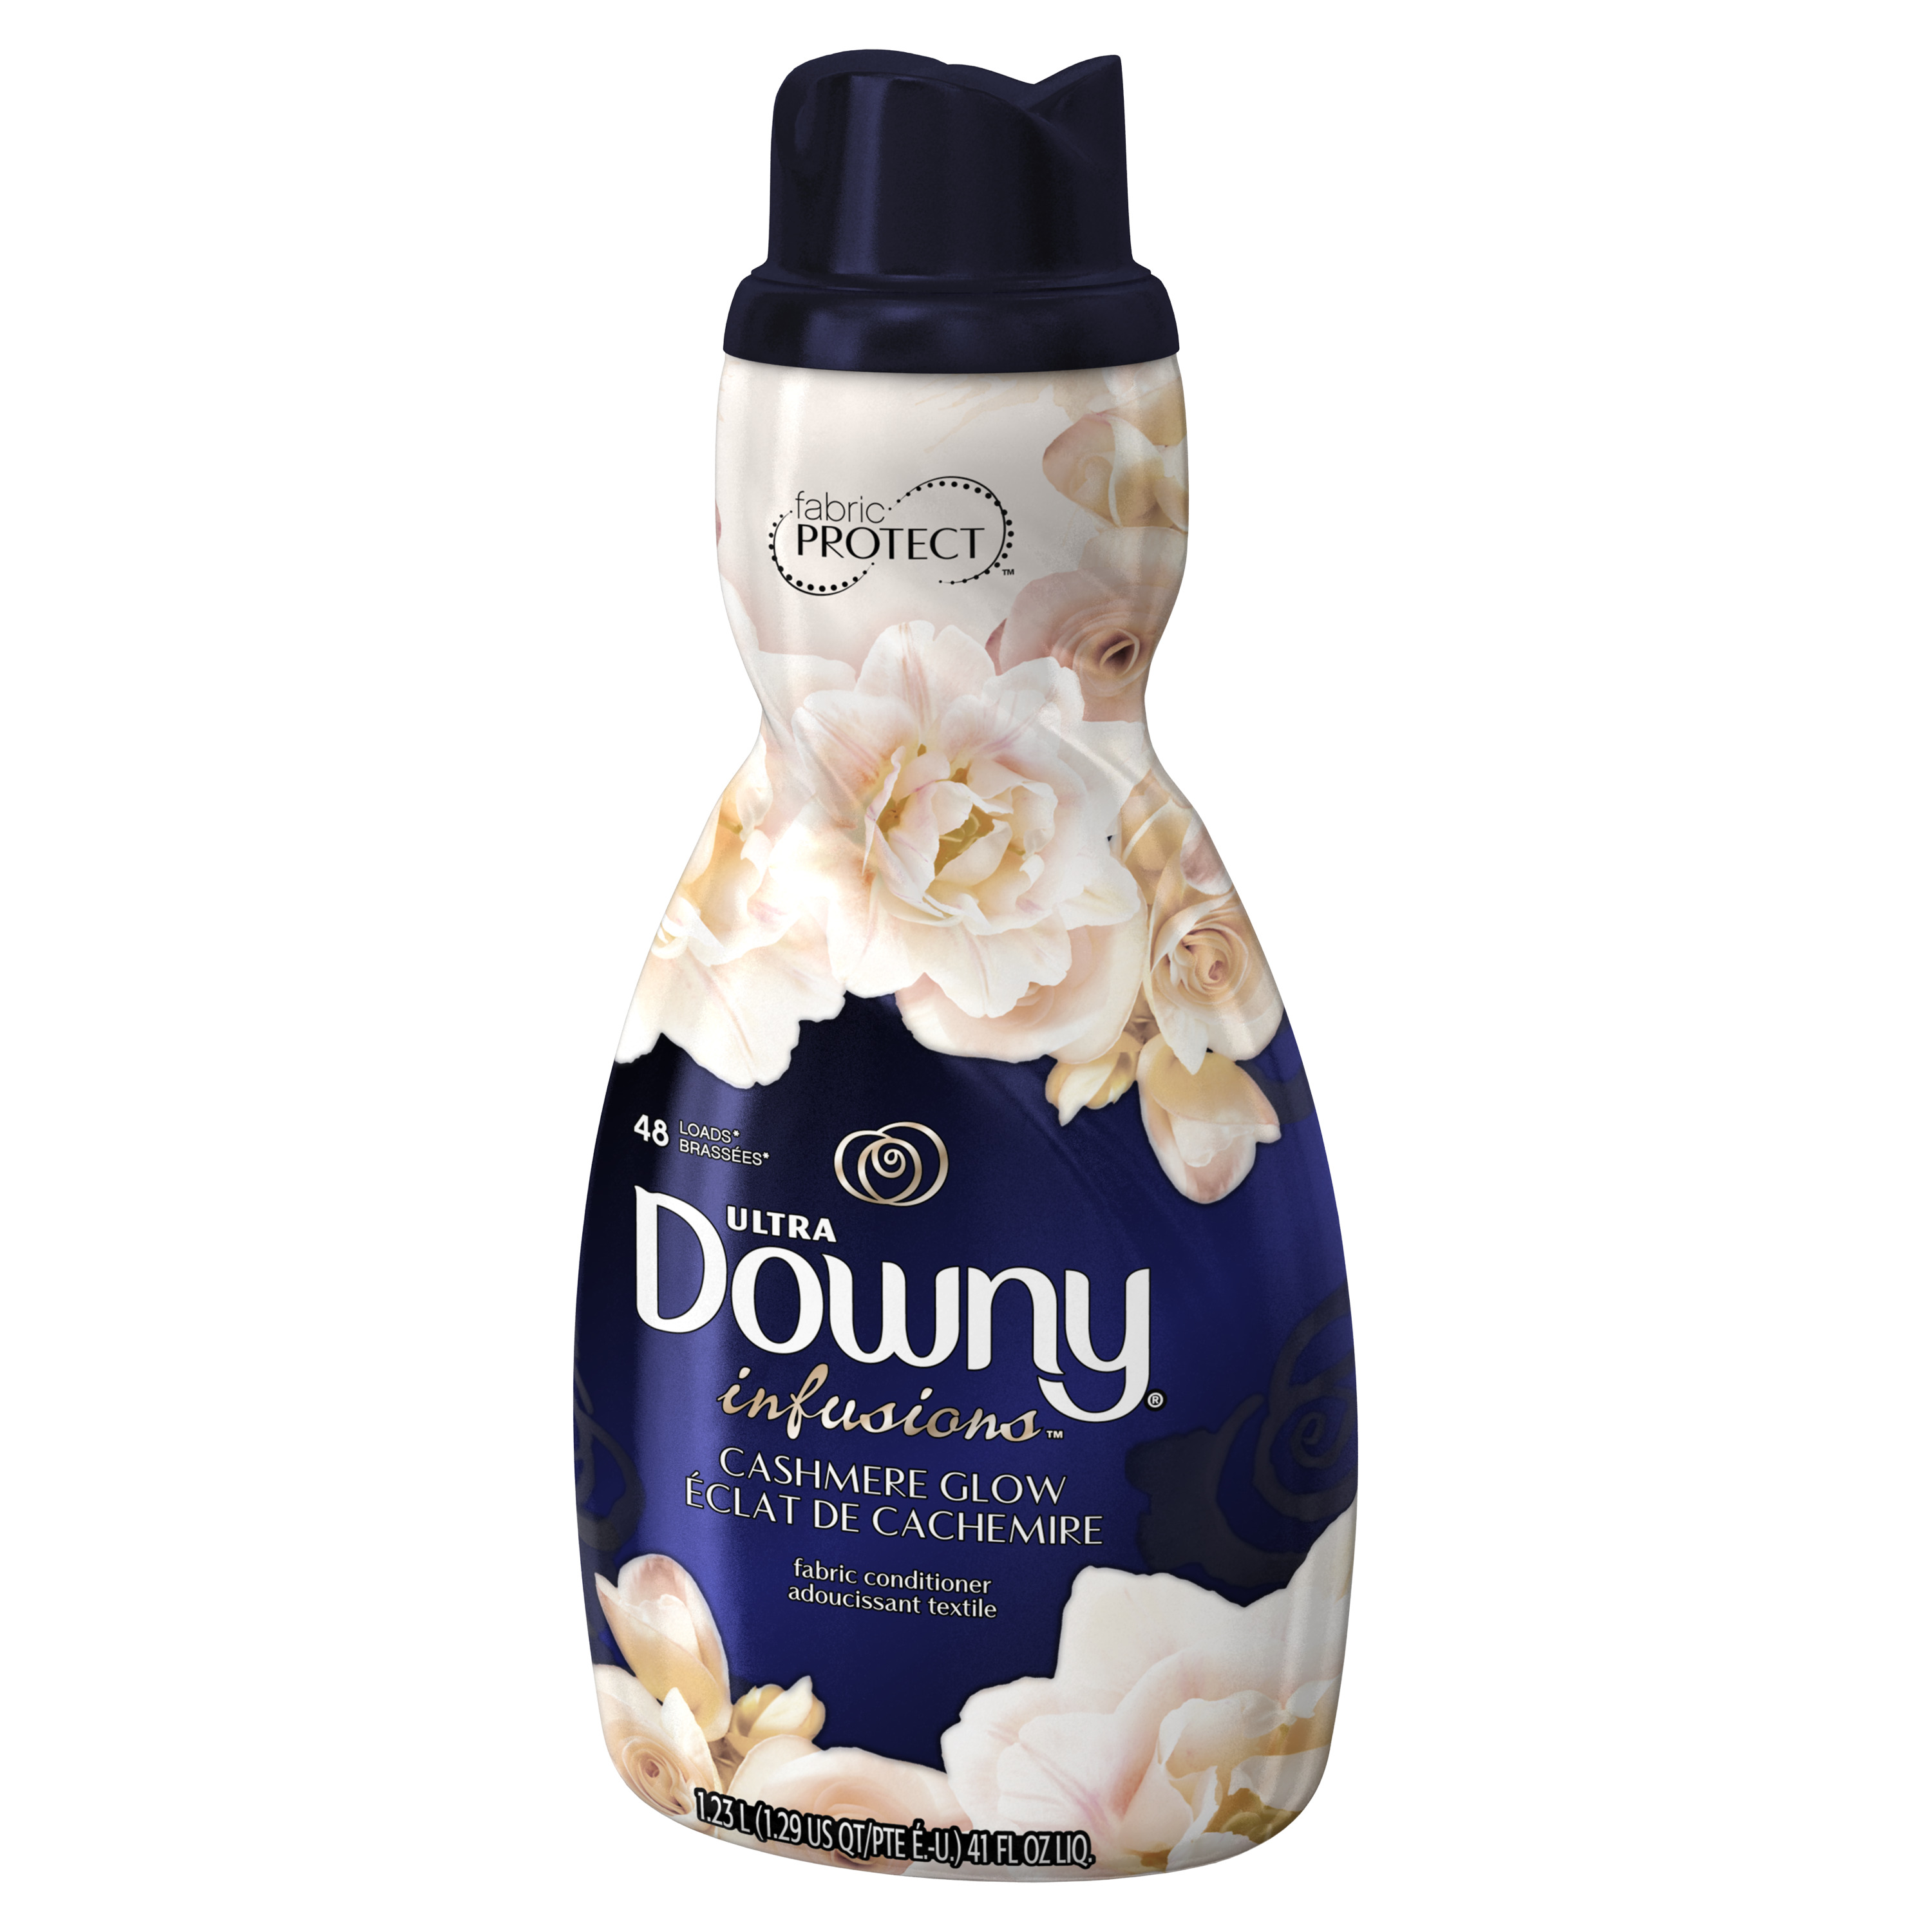 Downy Ultra Infusions Liquid Fabric Conditioner, Cashmere Glow, 48 Loads, 41 fl oz